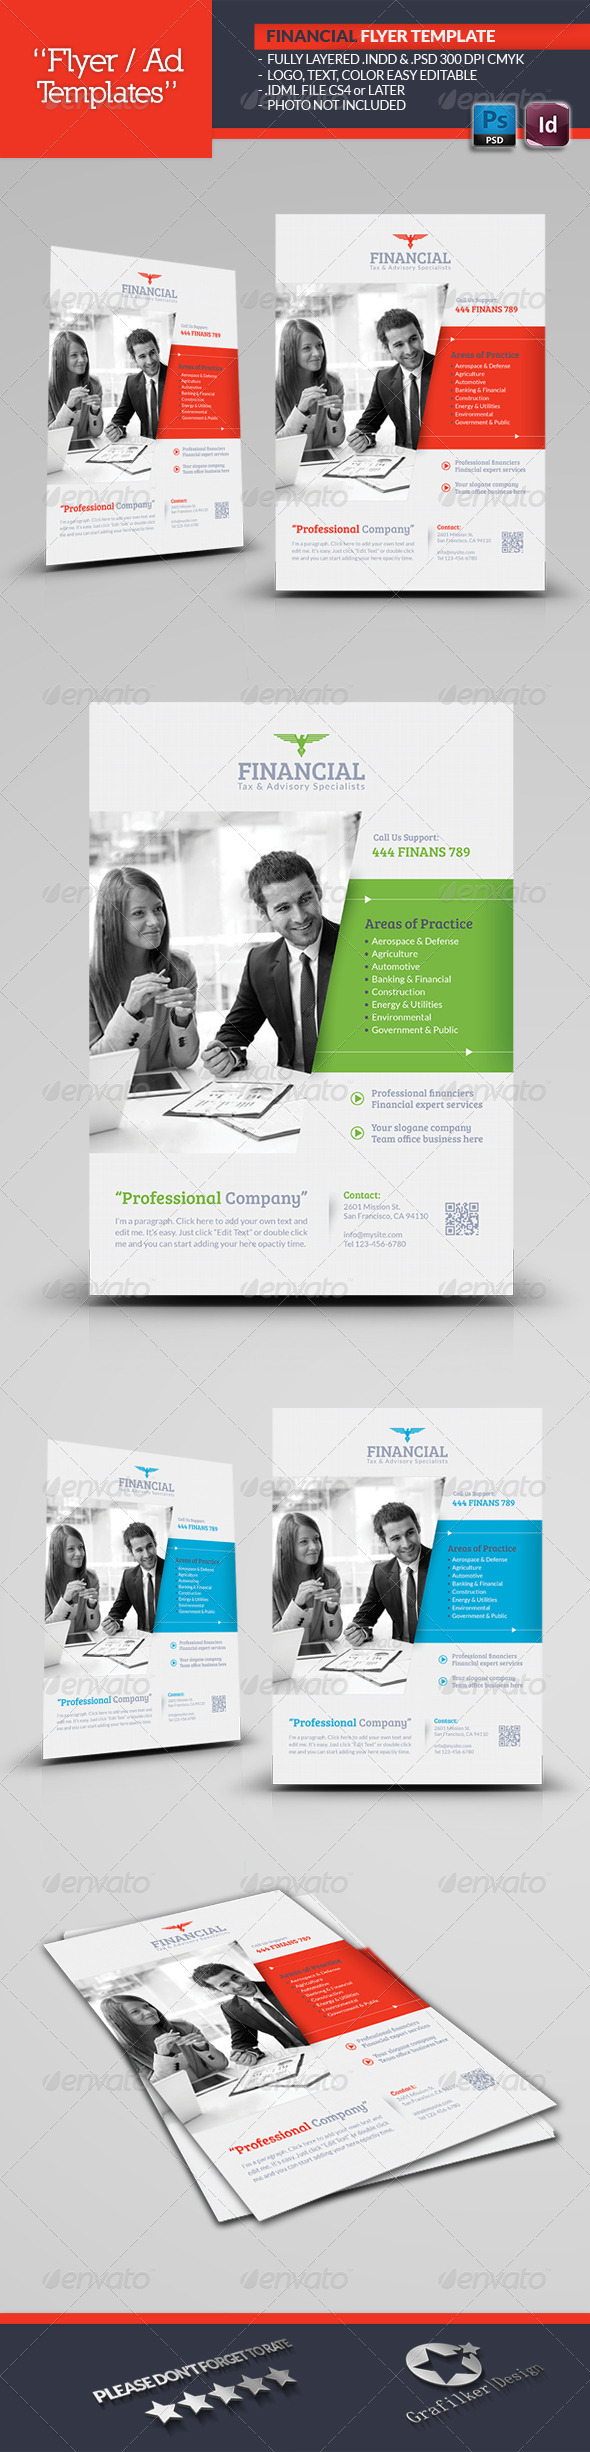 Financial Flyer Template - Corporate Flyers